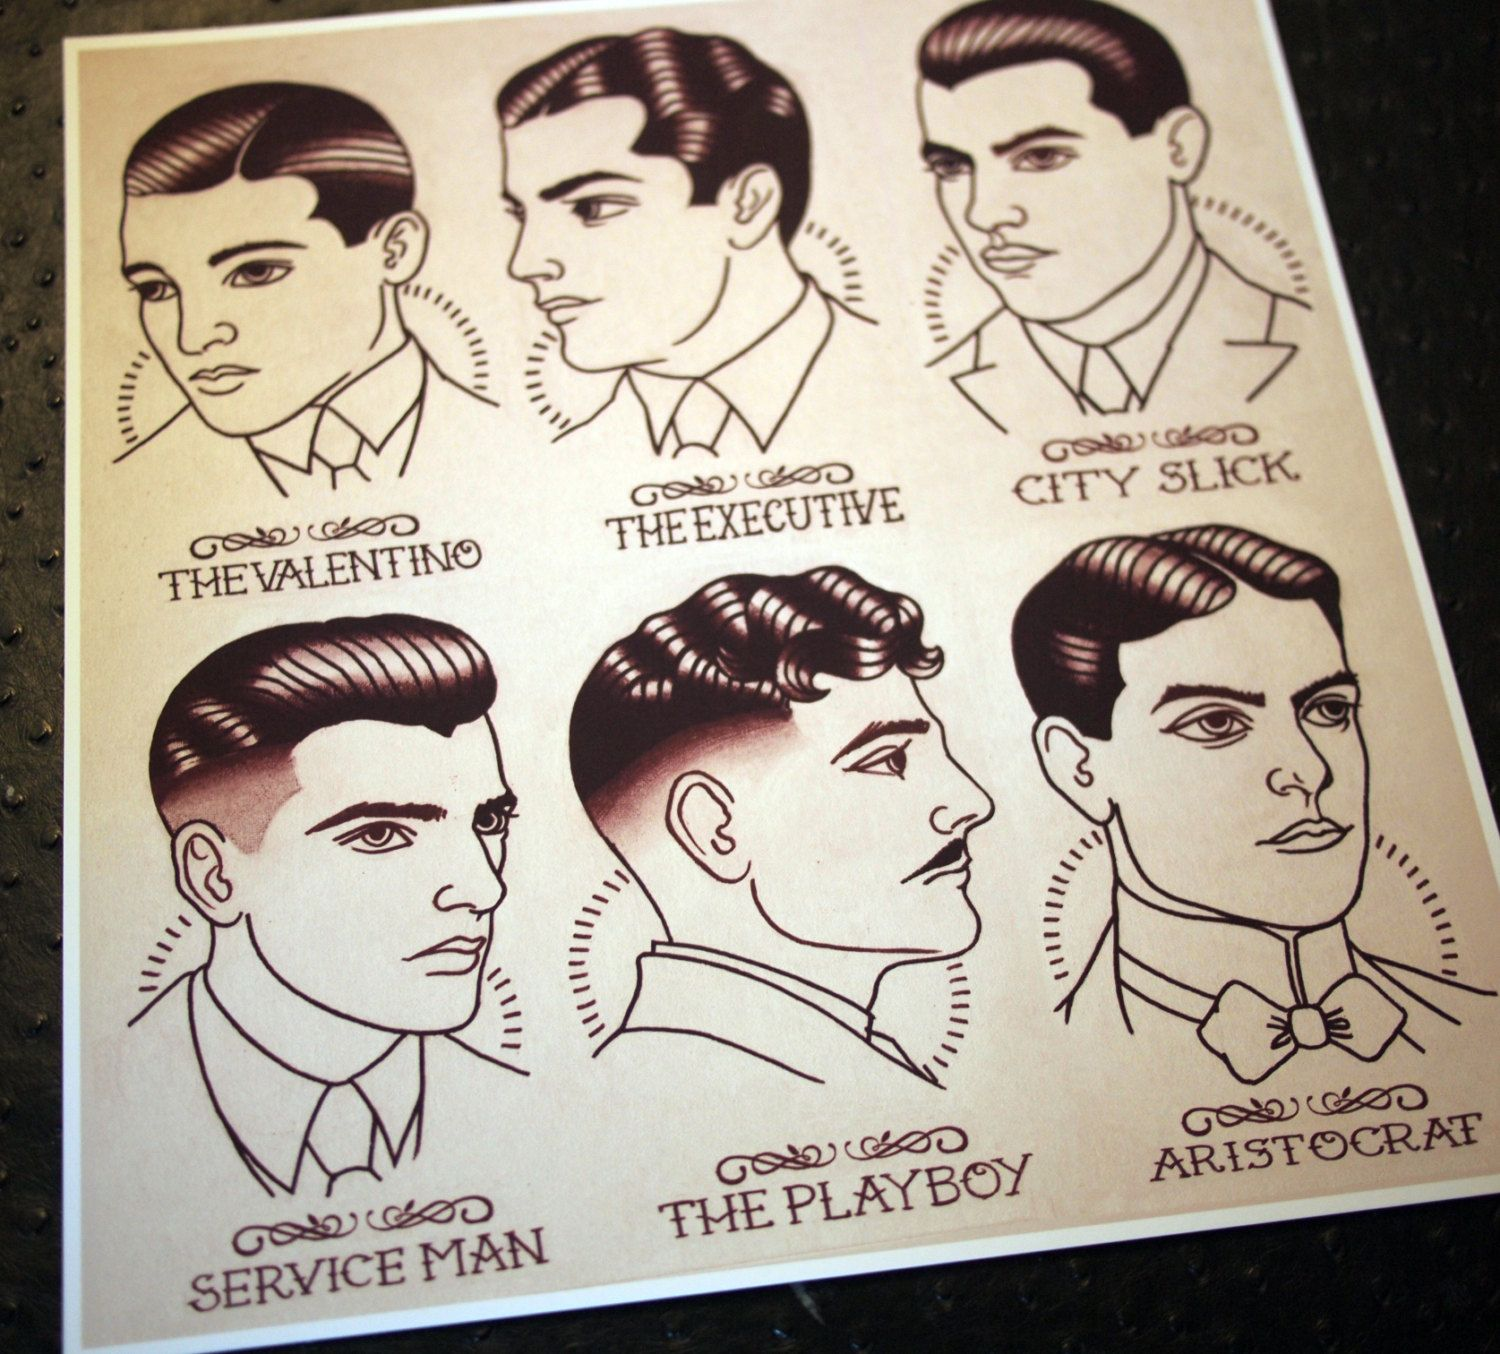 1920's gentlemen's hairstyle guide